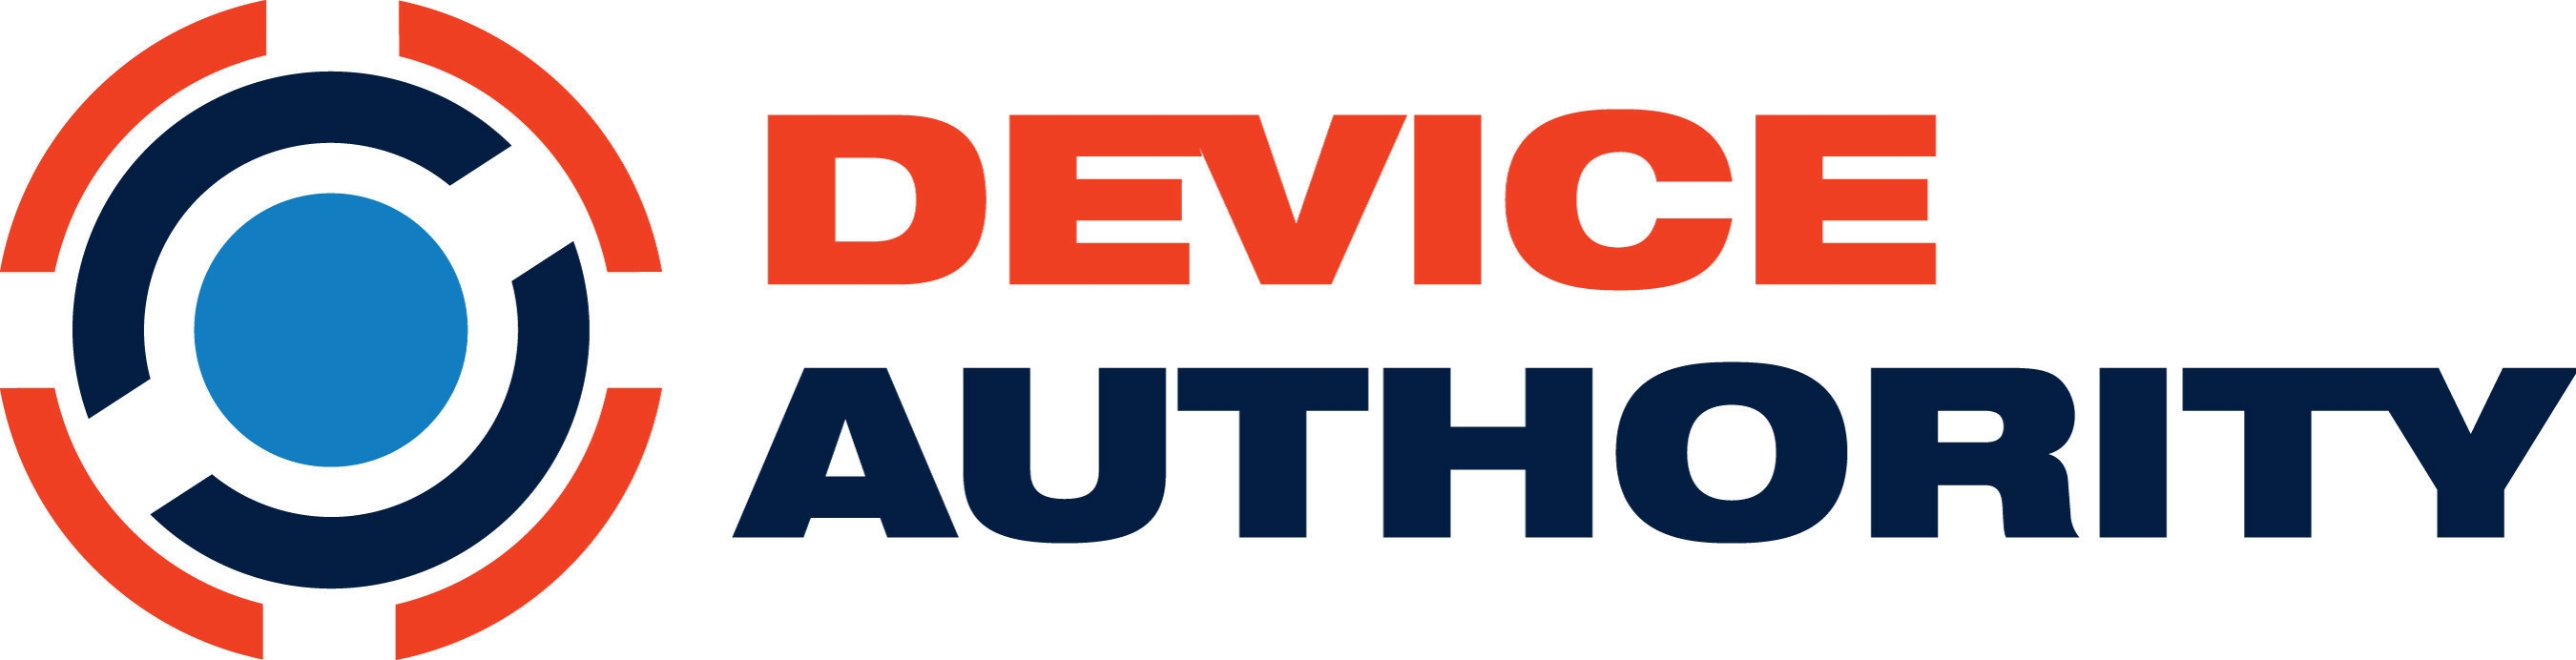 DeviceAuthority, Inc. logo